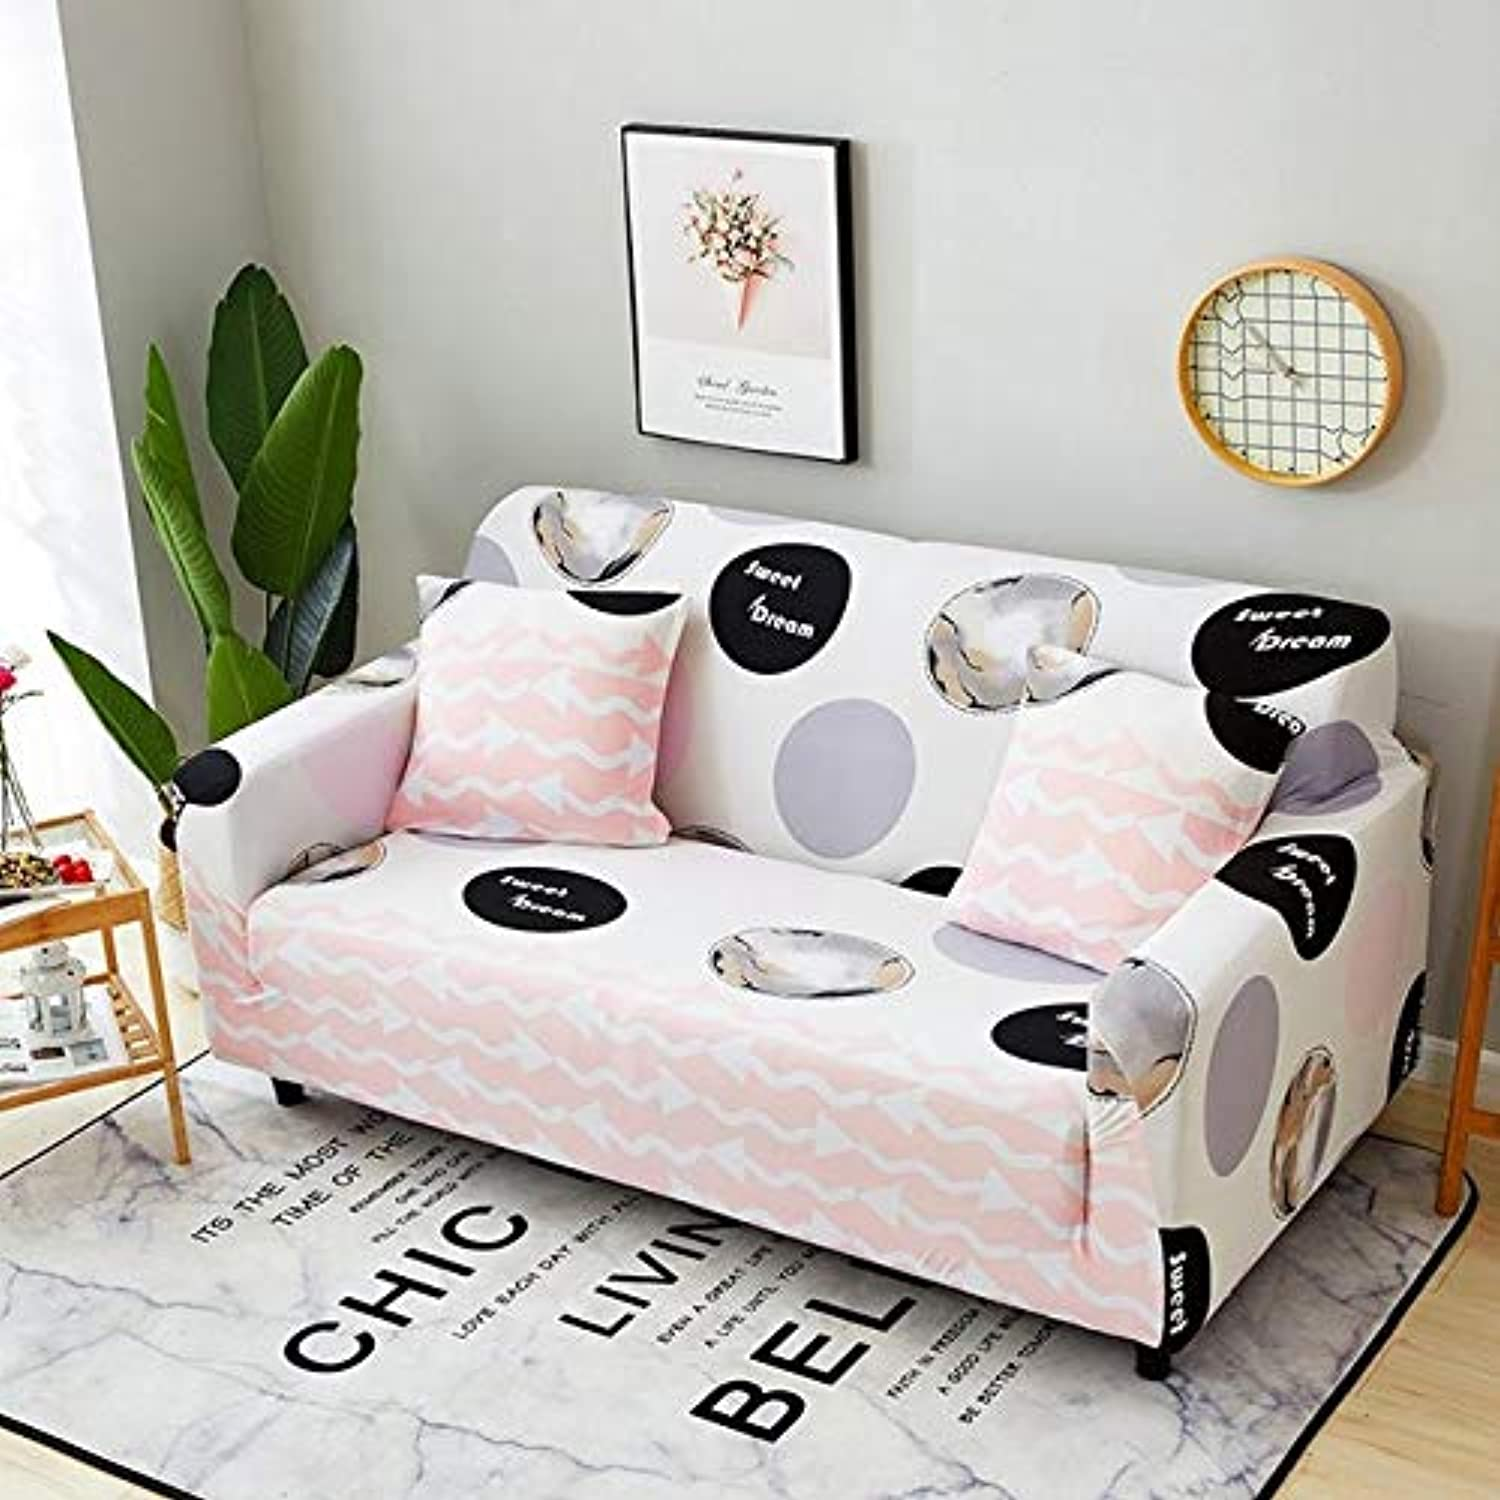 Hot Patterns Unicorn Horse Flamingo Cactus Sofa Cover Elastic Wrapped Entire Sofa Slipcovers Stretch Fabric Couch Covers Cases   06, Single seat